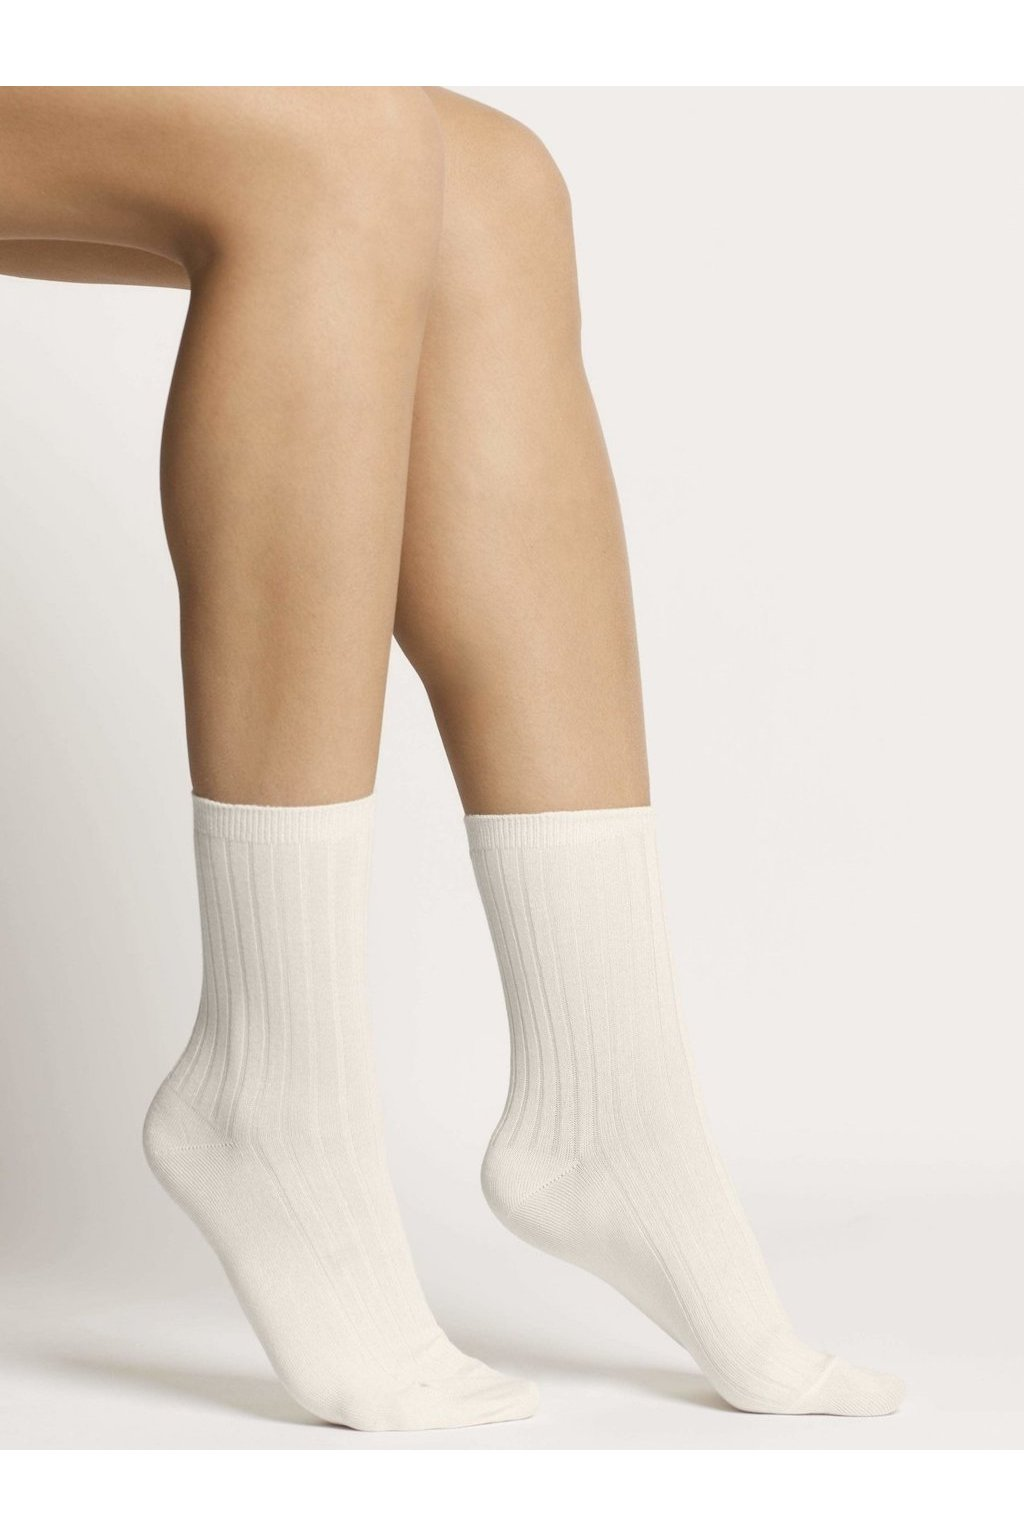 organic cotton socks off white 860271 1800x1800